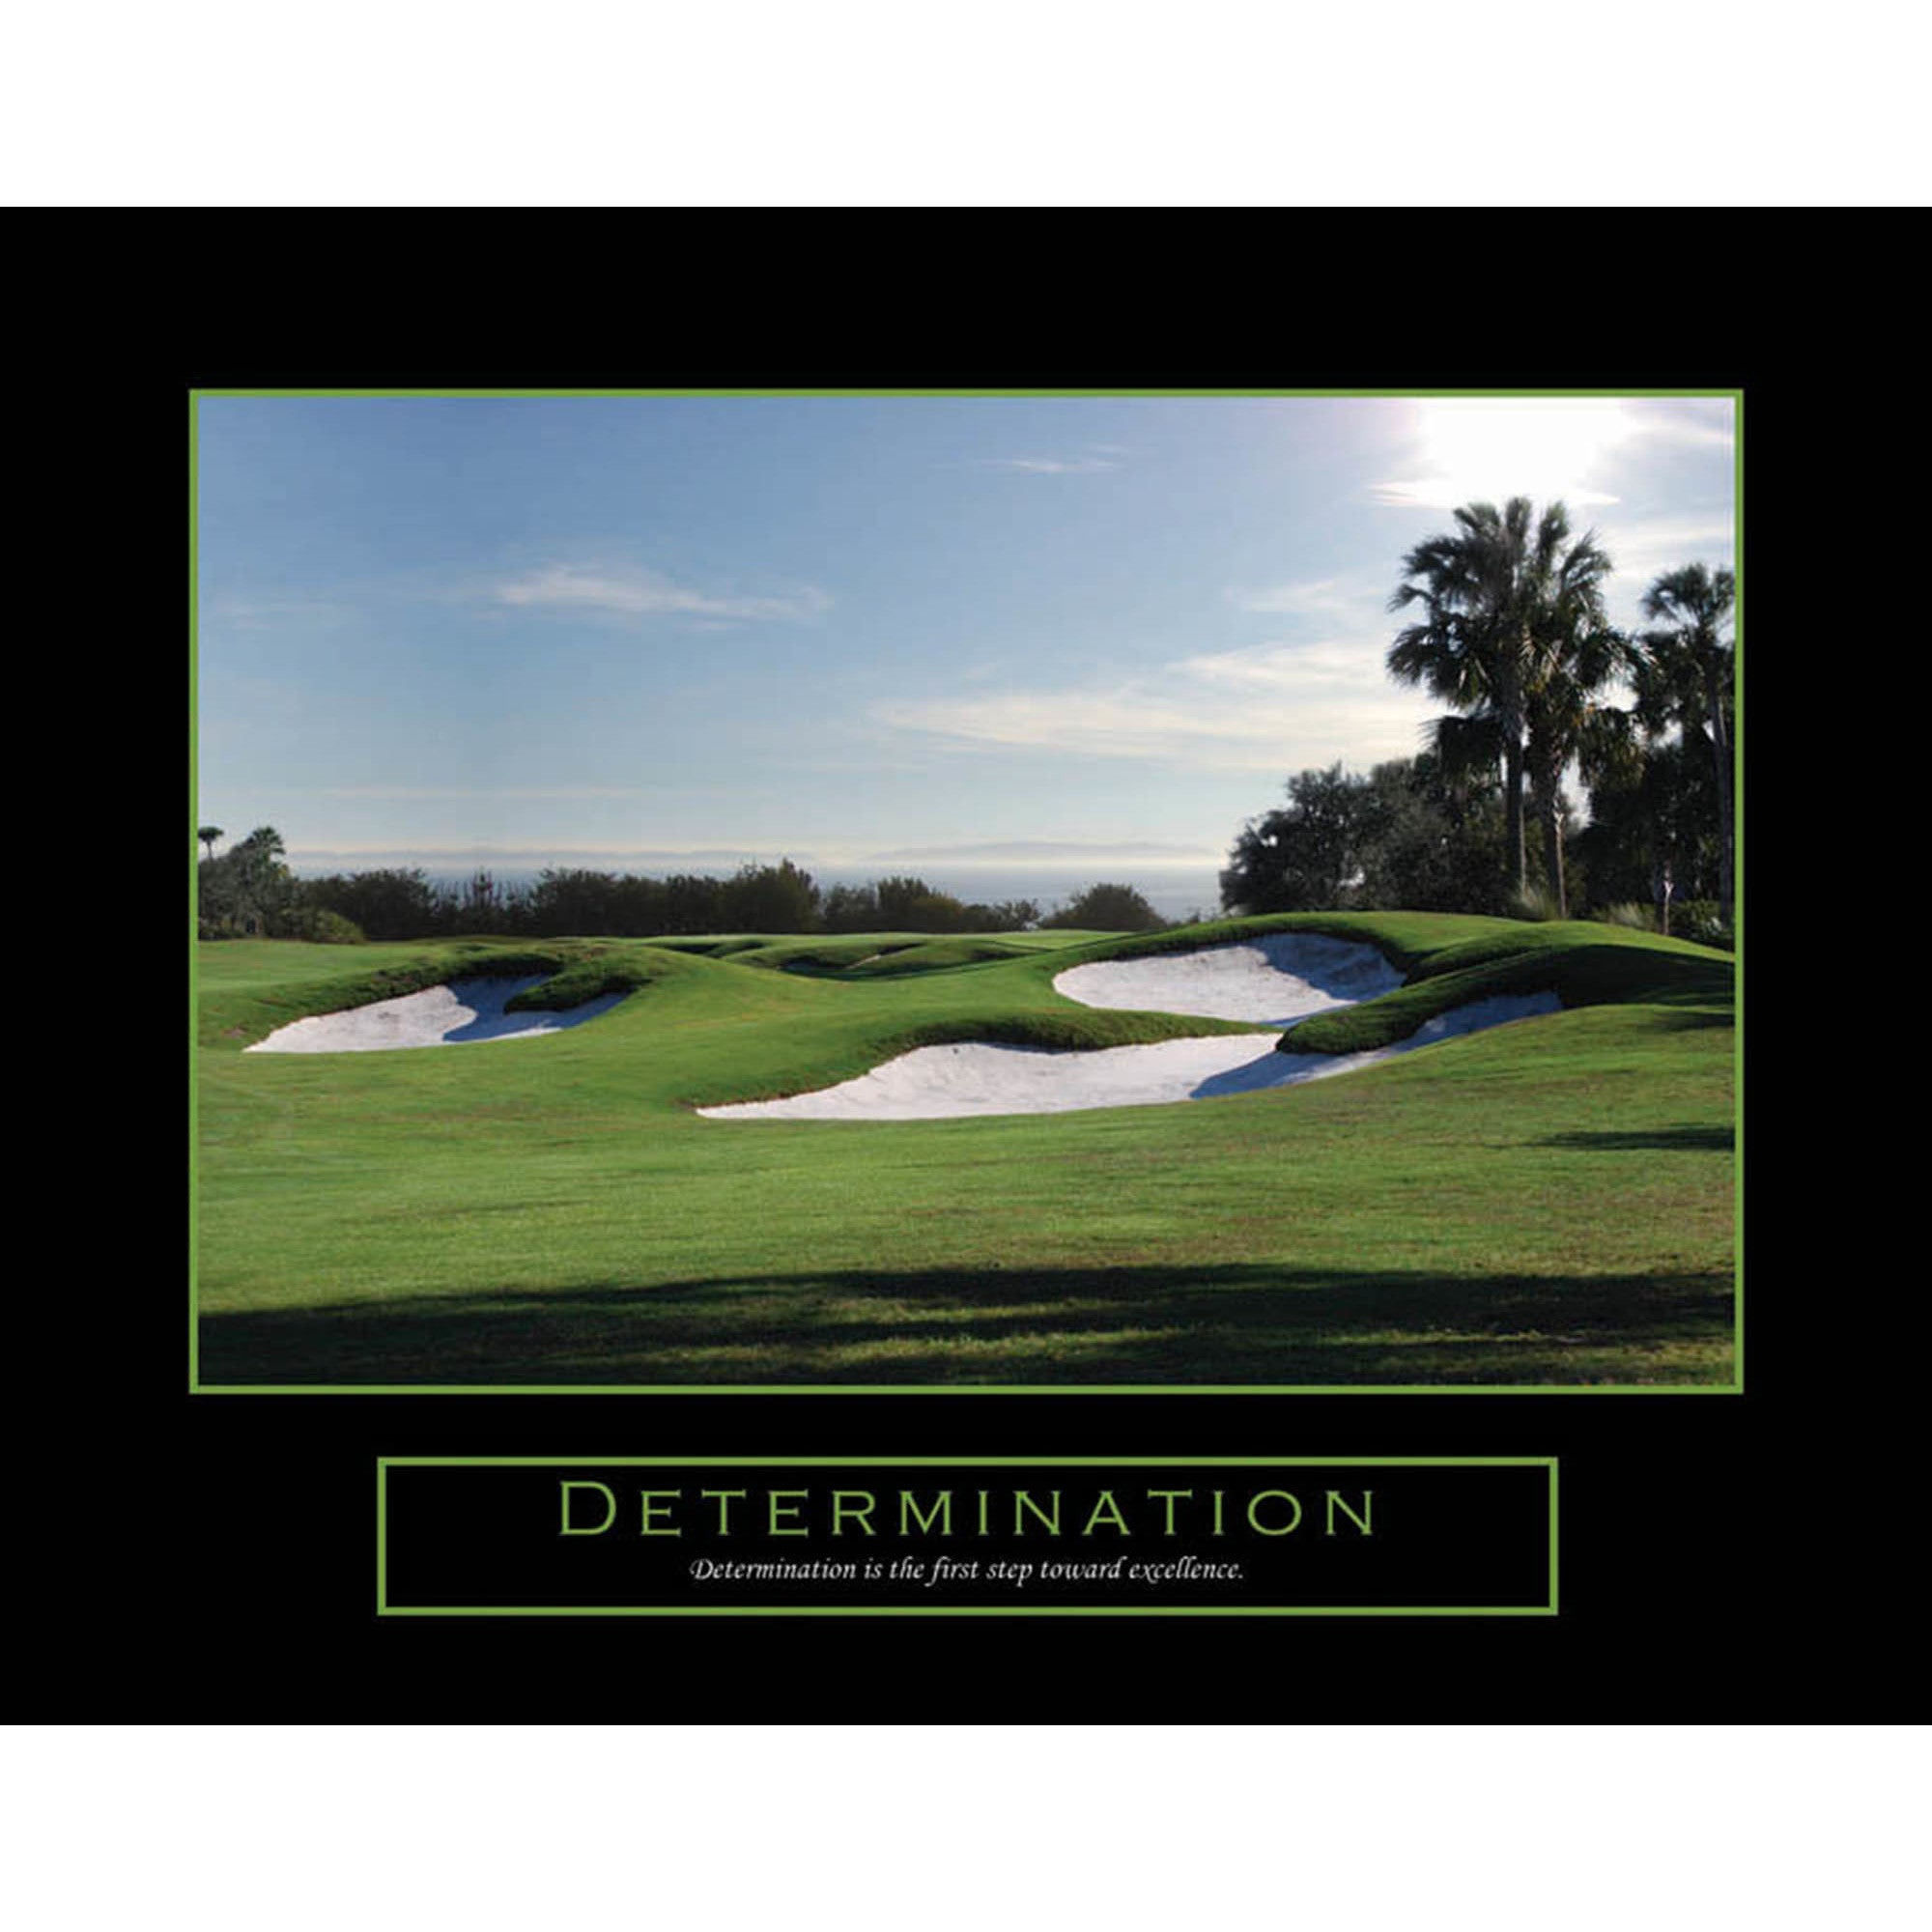 Inspirational Golf Quotes Motivational And Inspirational 'determination' Quotes Wall Art